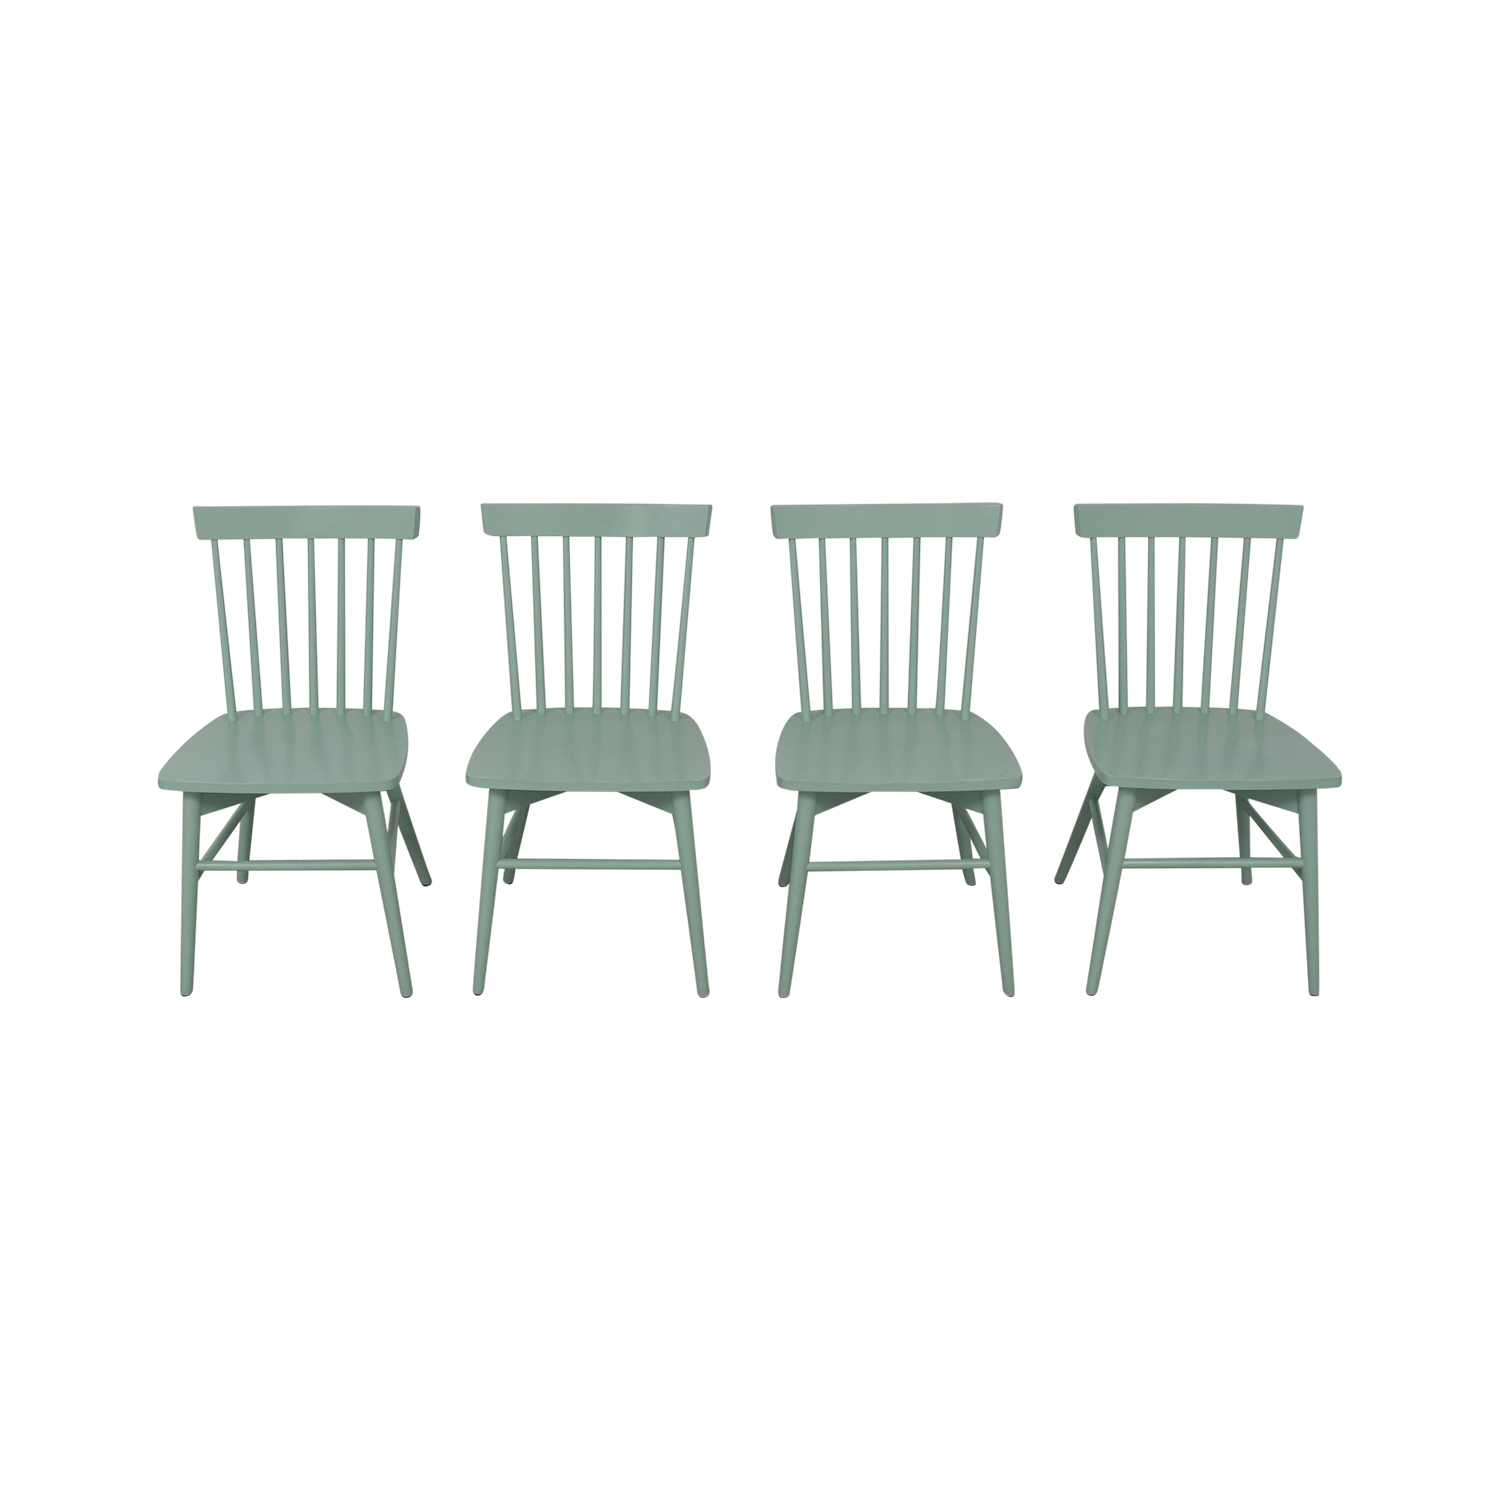 Target Target Set of Dining Chairs second hand